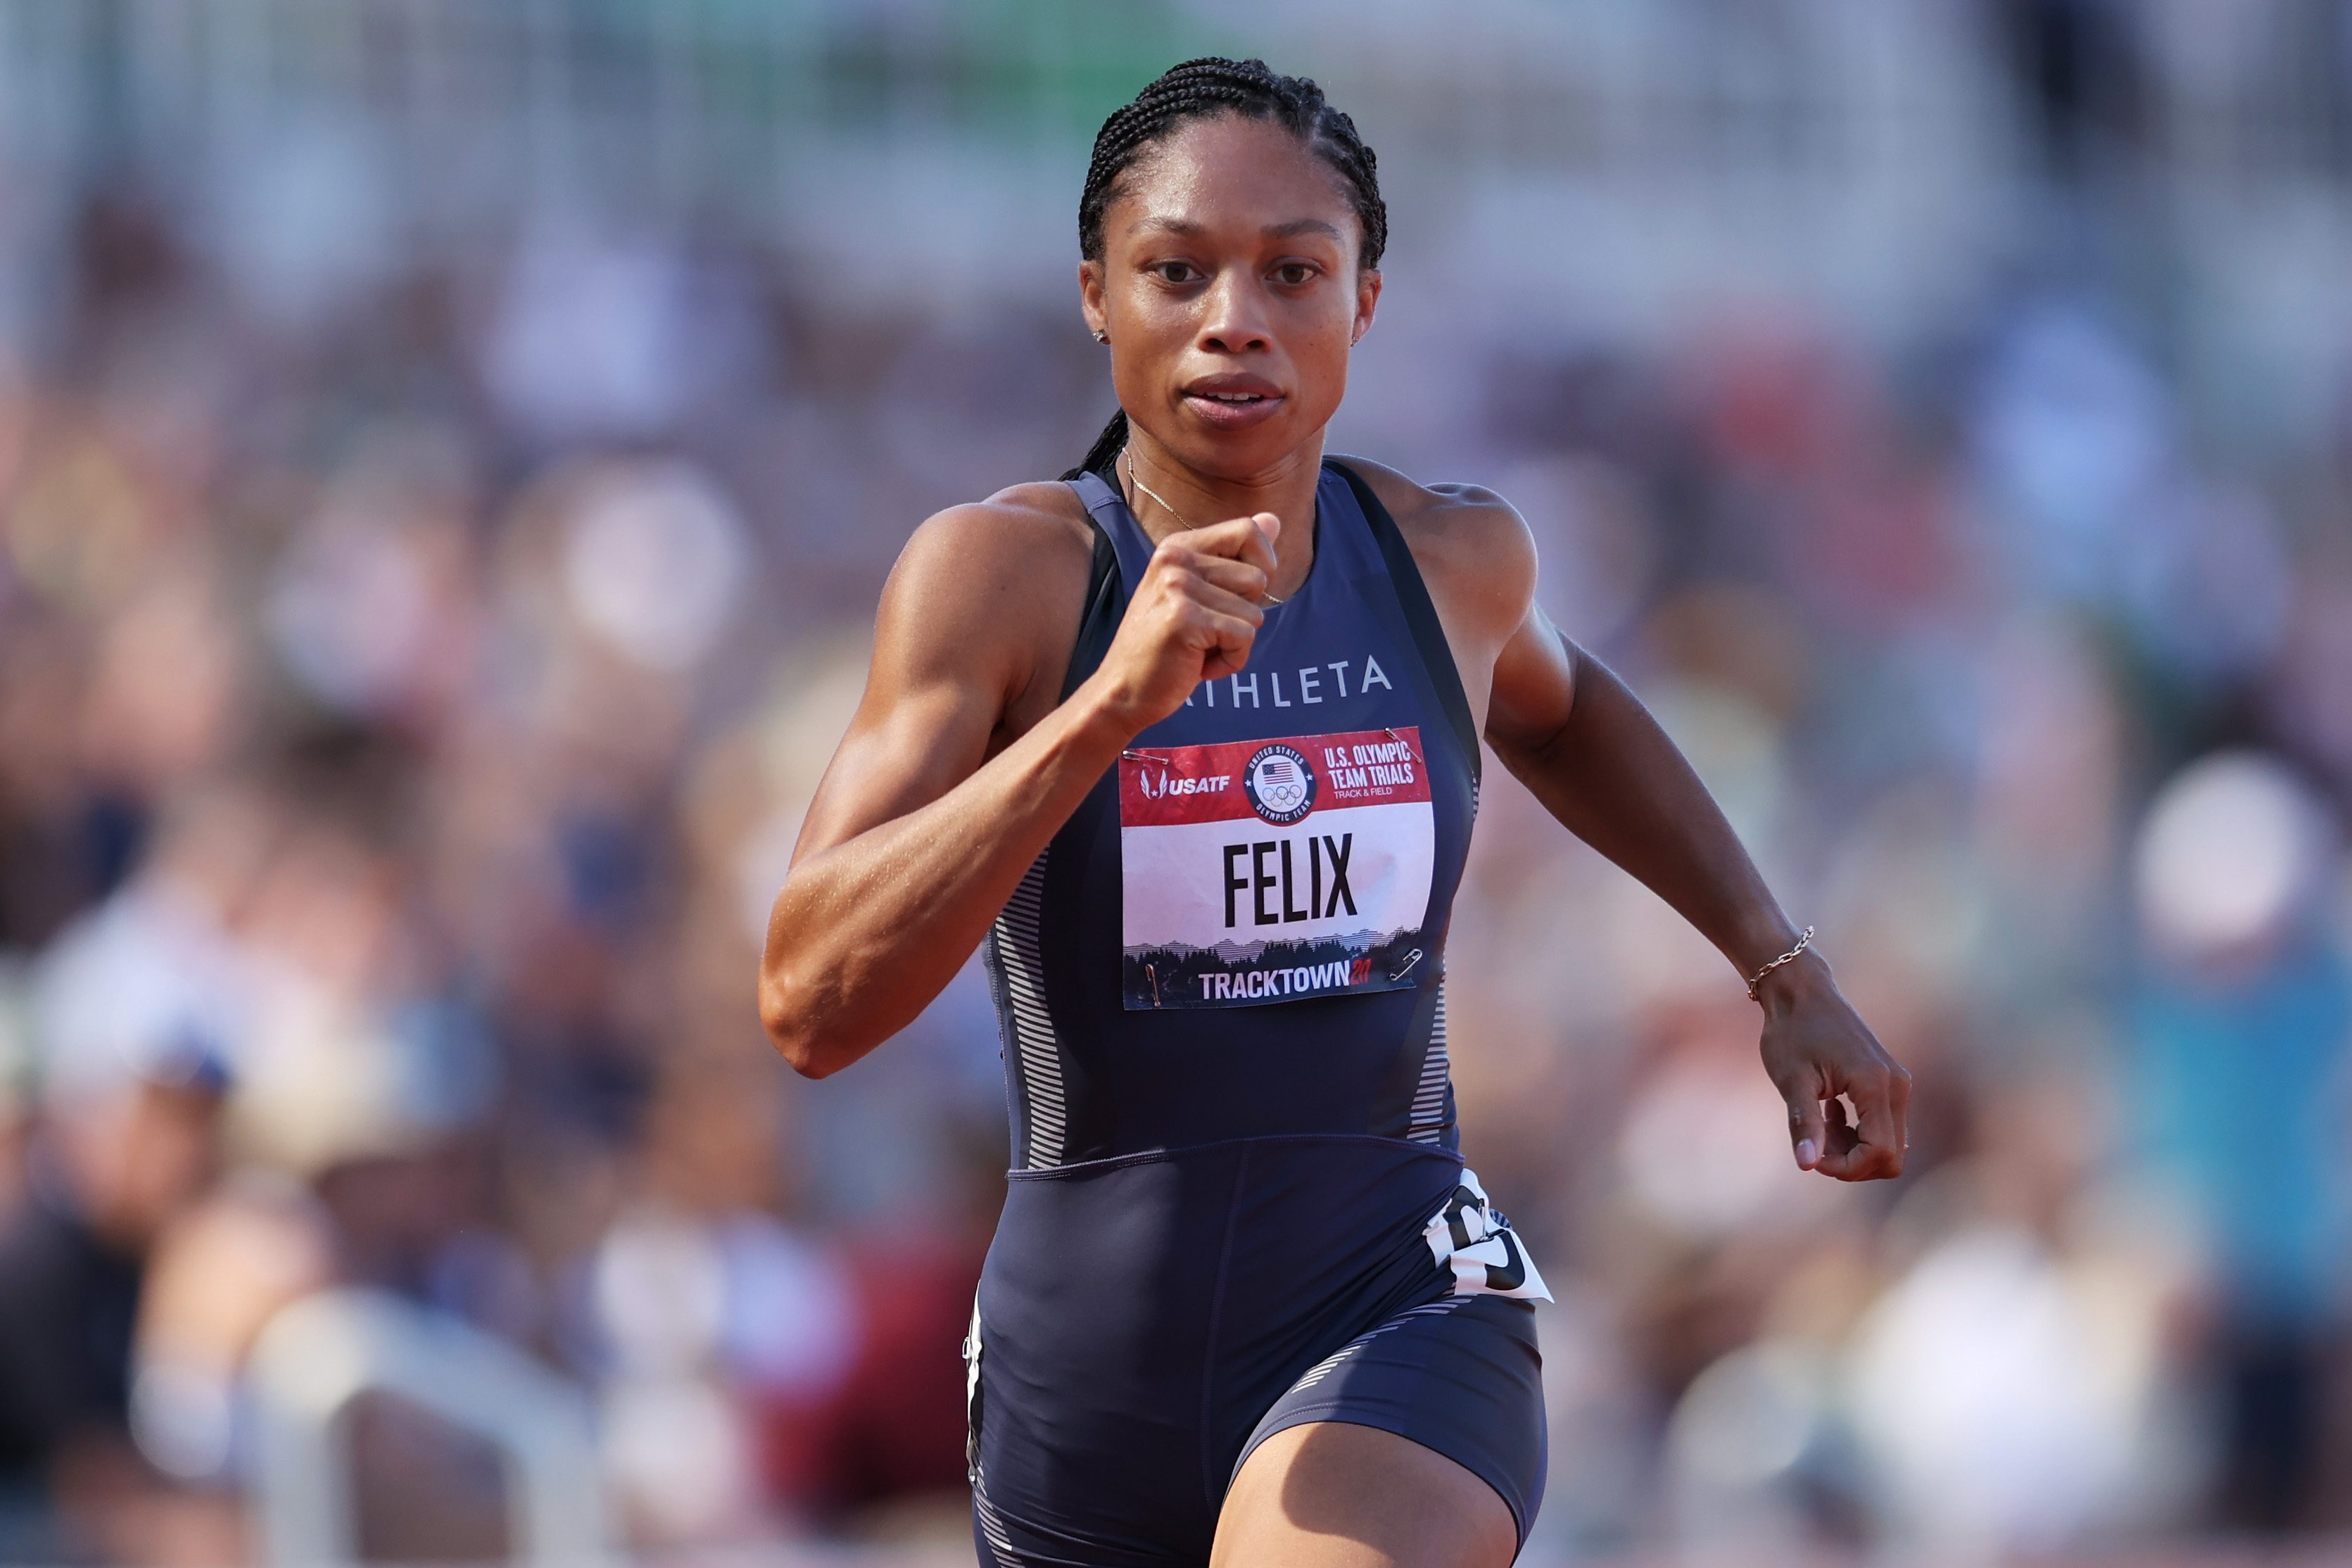 Select Olympic Track Hopefuls Get $10K from Allyson Felix